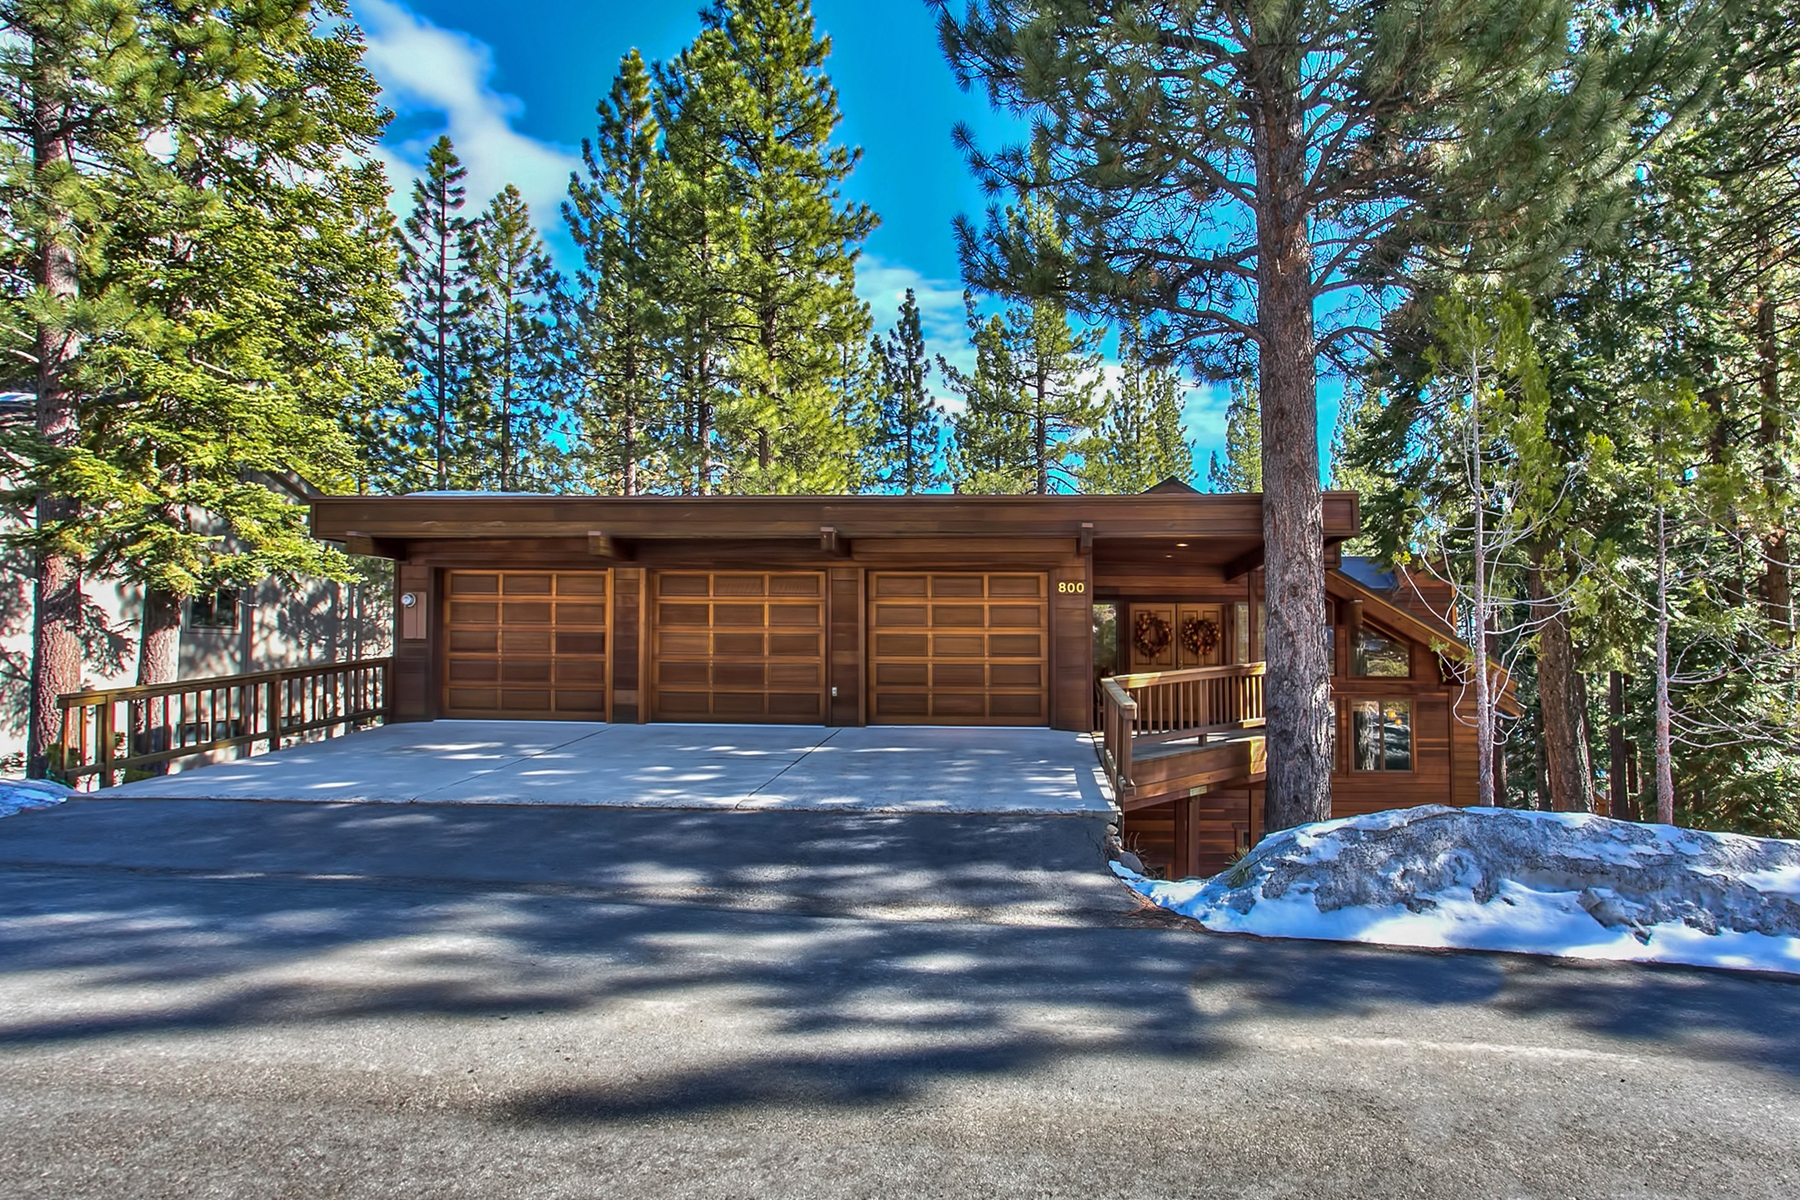 Maison unifamiliale pour l Vente à 800 Tyner Way Incline Village, Nevada, 89451 Lake Tahoe, États-Unis